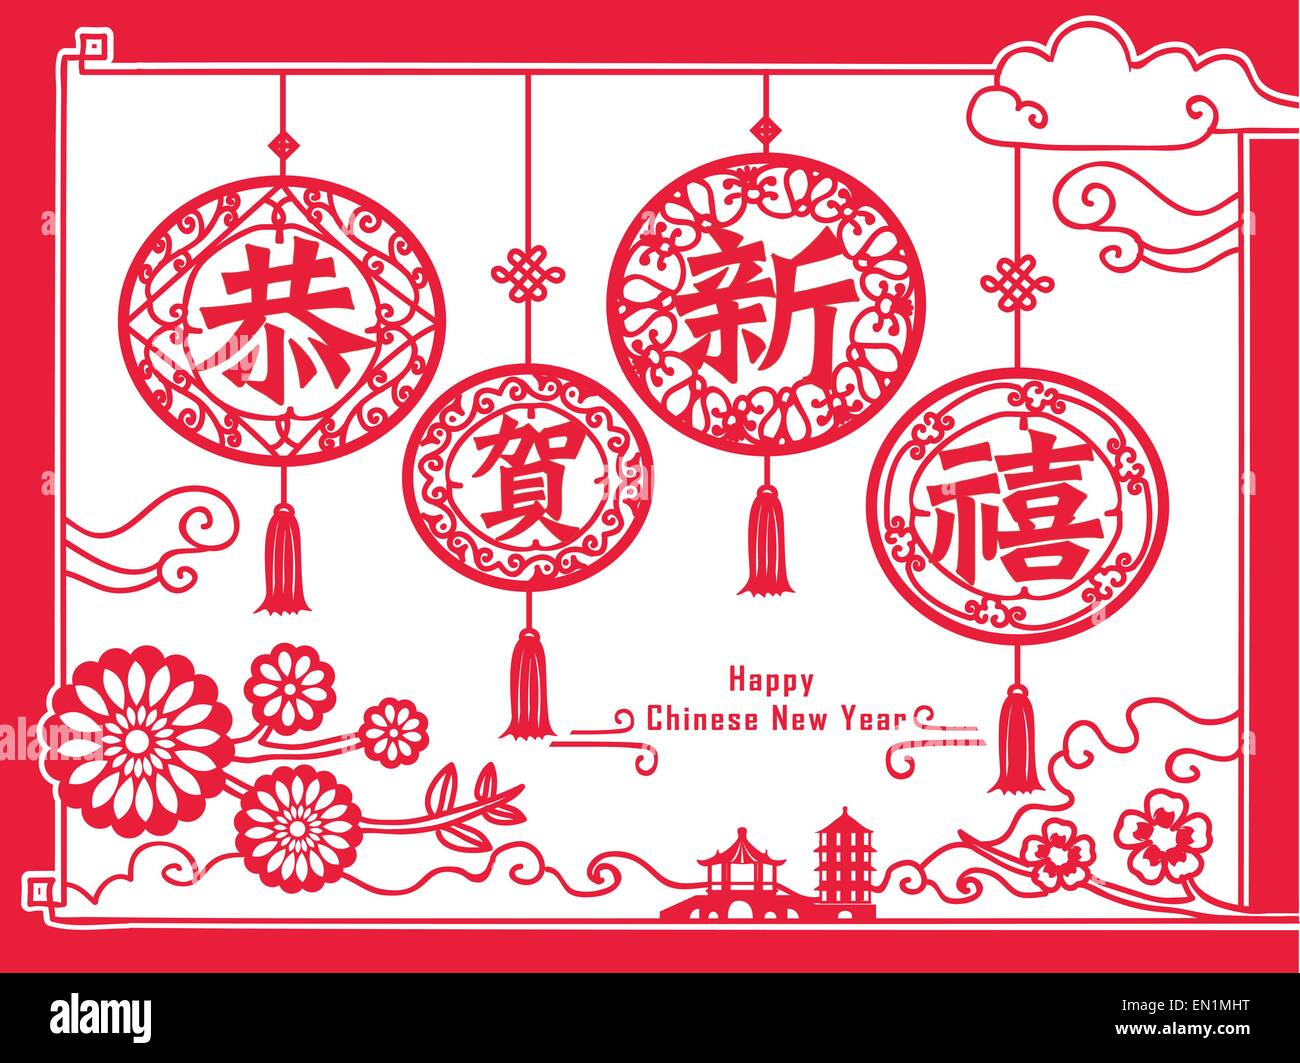 Paper Cut Arts Of Happy Chinese New Year In Traditional Word